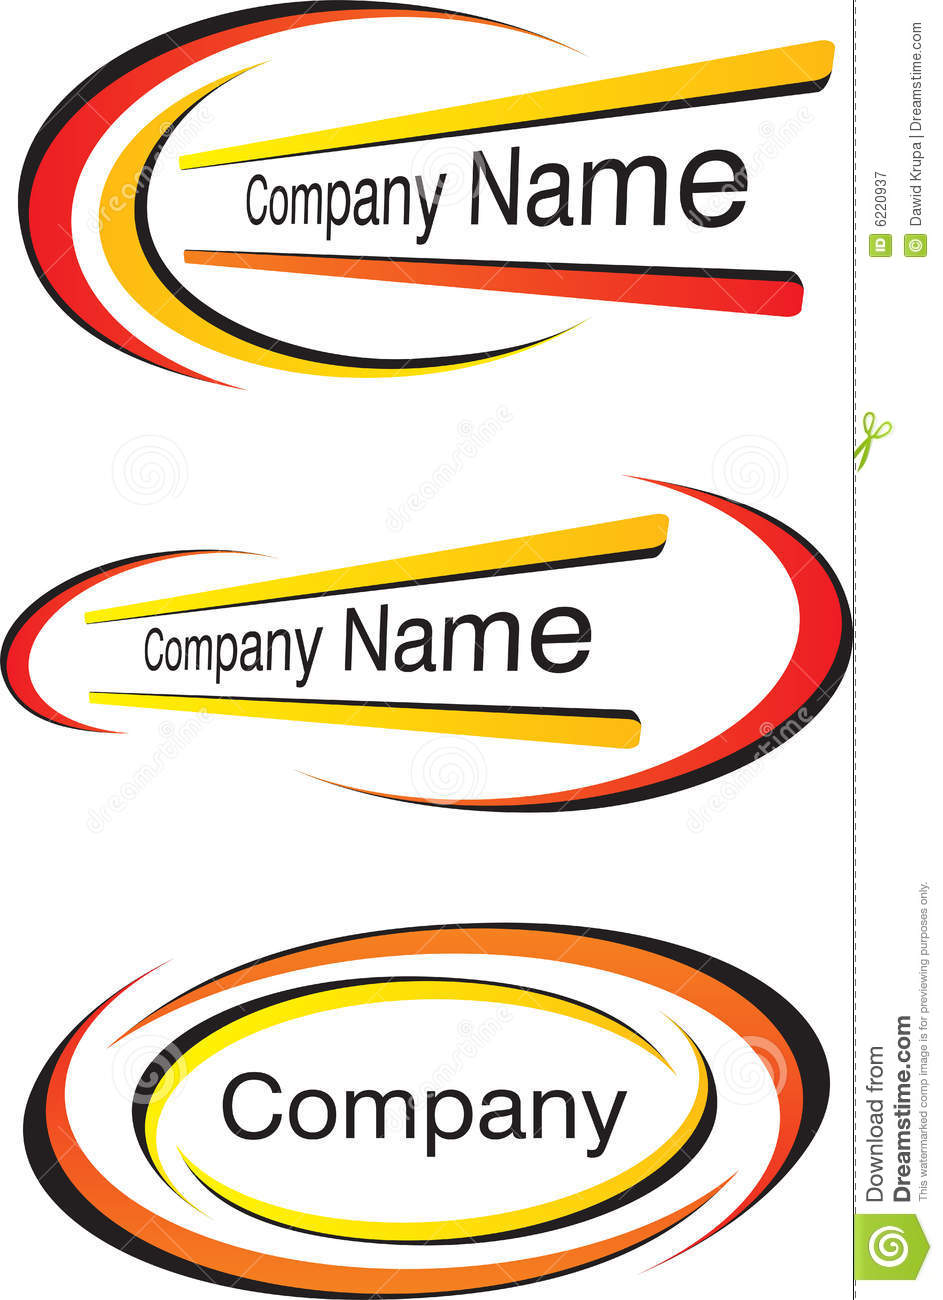 Corporate logo templates stock vector. Illustration of image - 6220937 for Logo Design Samples Free Download  146hul